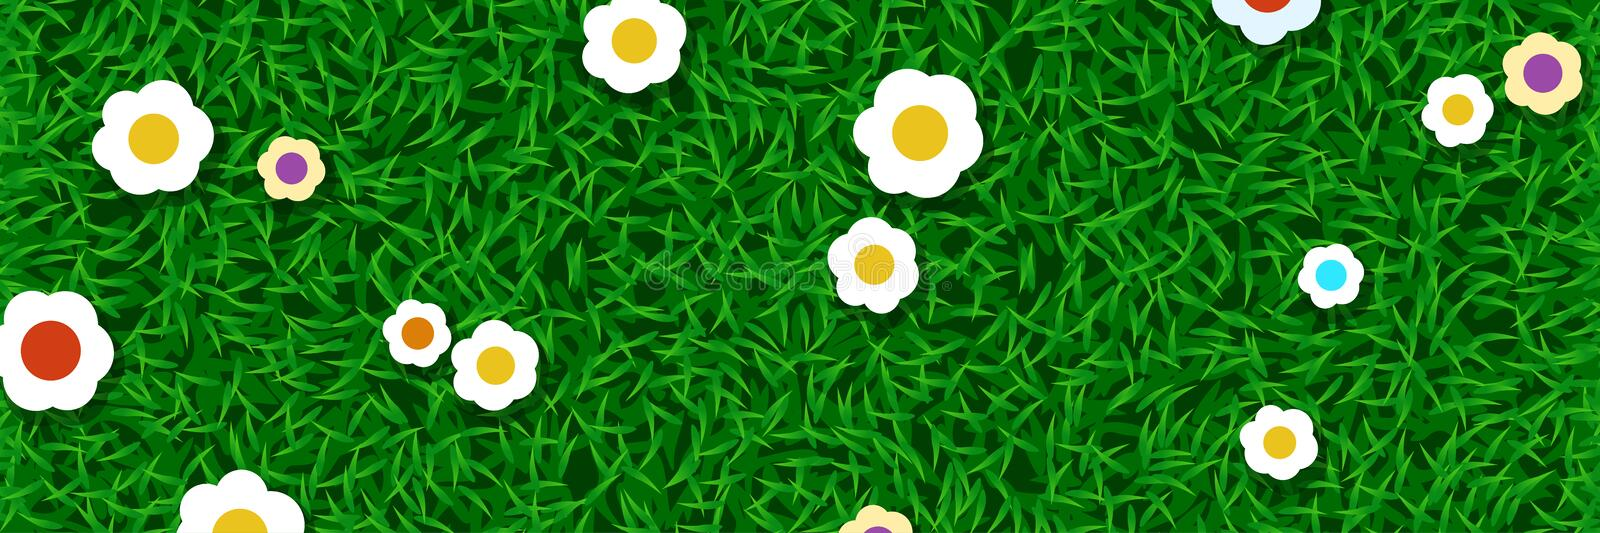 Lawn grass with flowers stock illustration